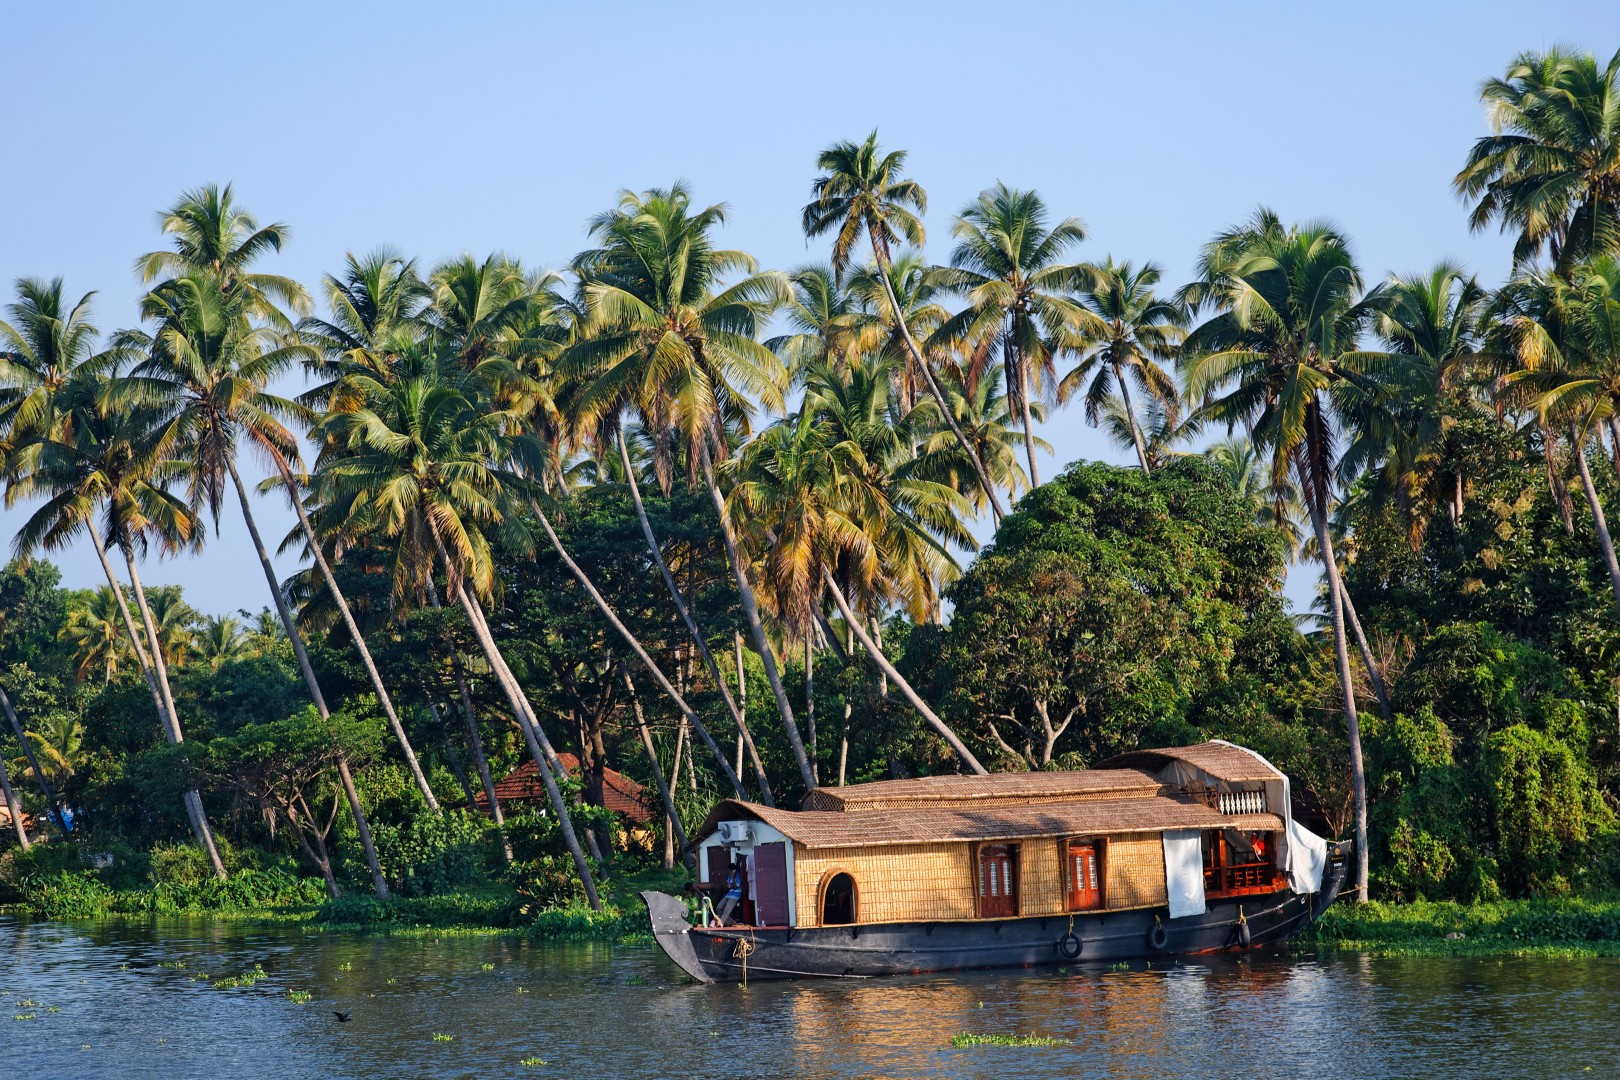 The good, bad and ugly sides to cruising the backwaters of Kerala